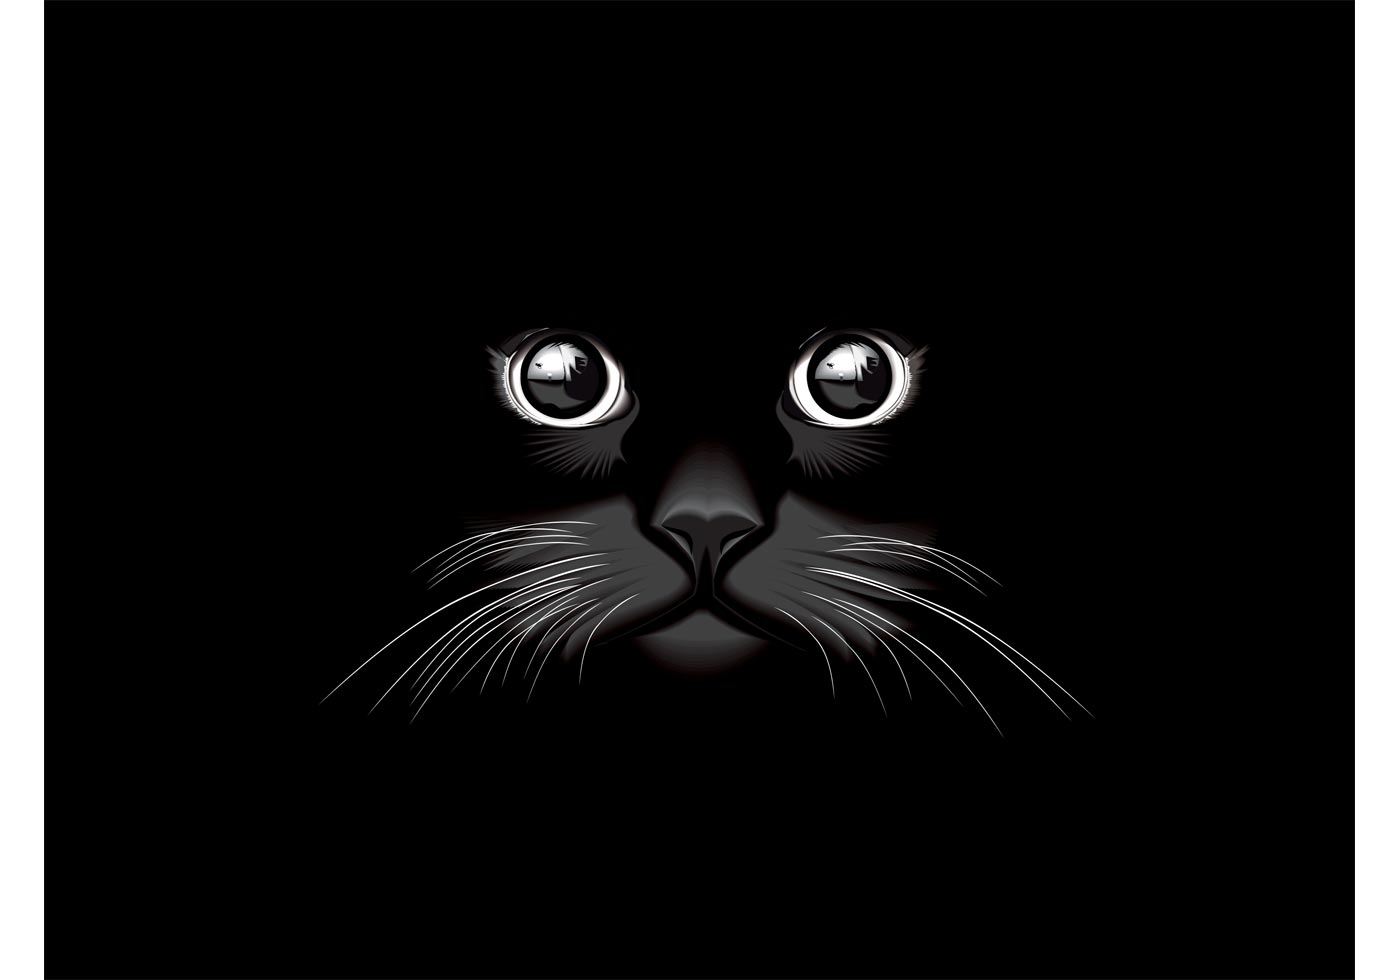 Black Cat Vector Download Free Vector Art Stock